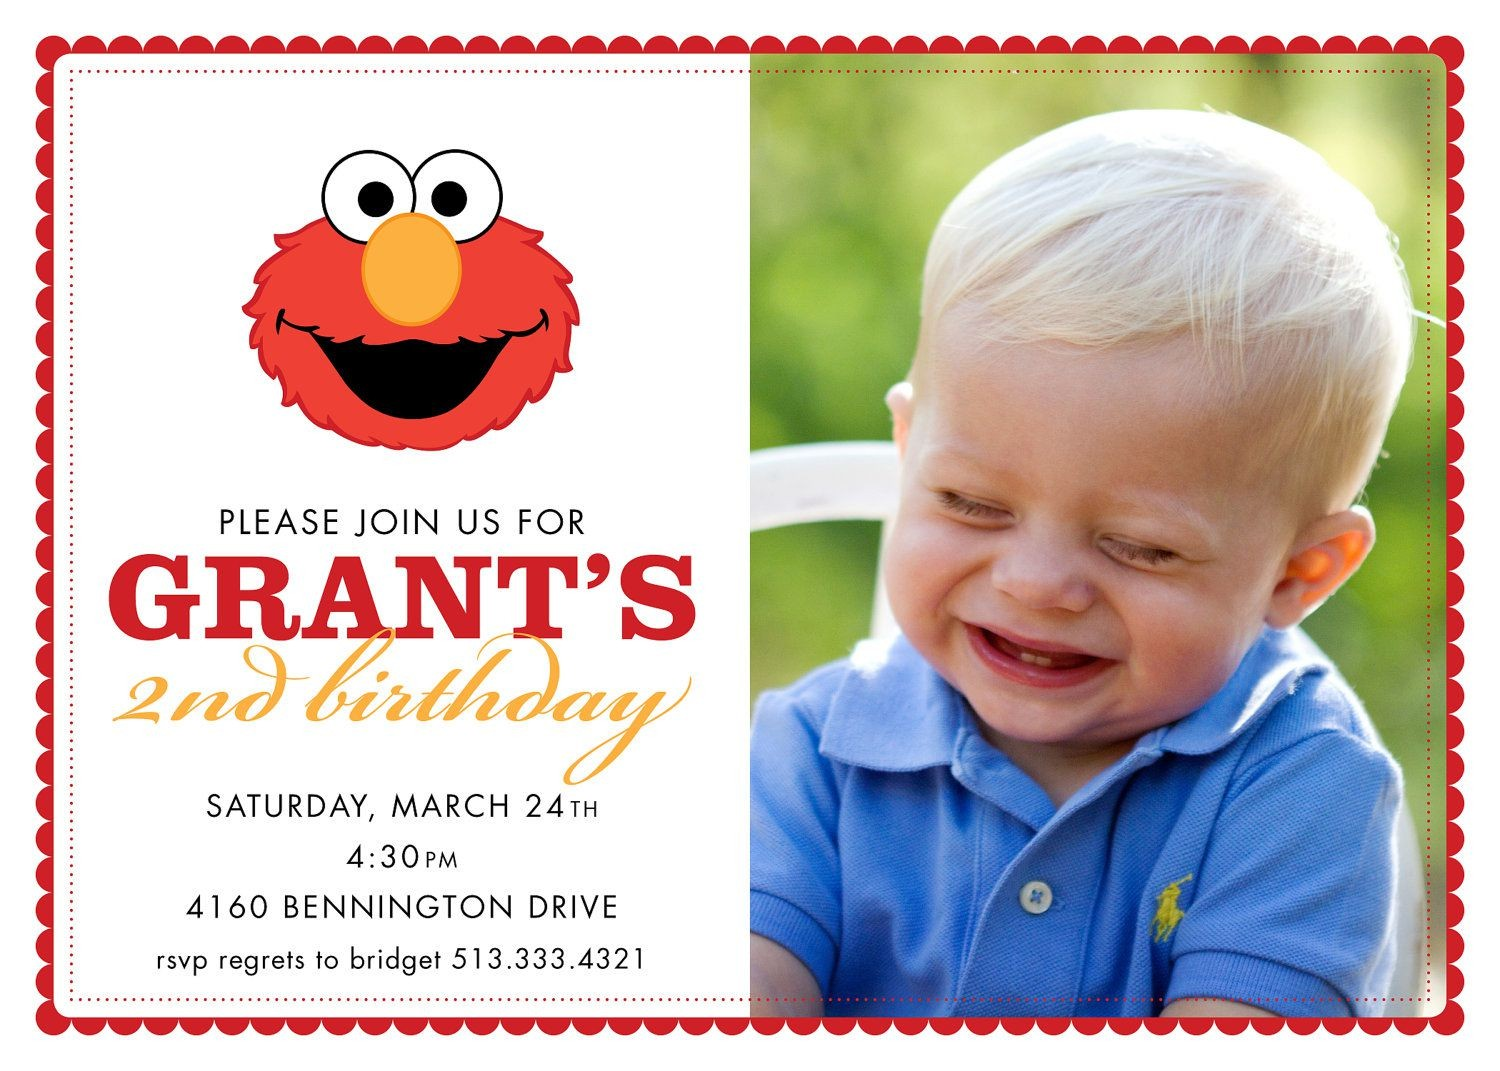 1st birthday invitation templates photoshop ; invitation-birthday-psd-fresh-birthday-invitation-card-birthday-invitation-card-template-new